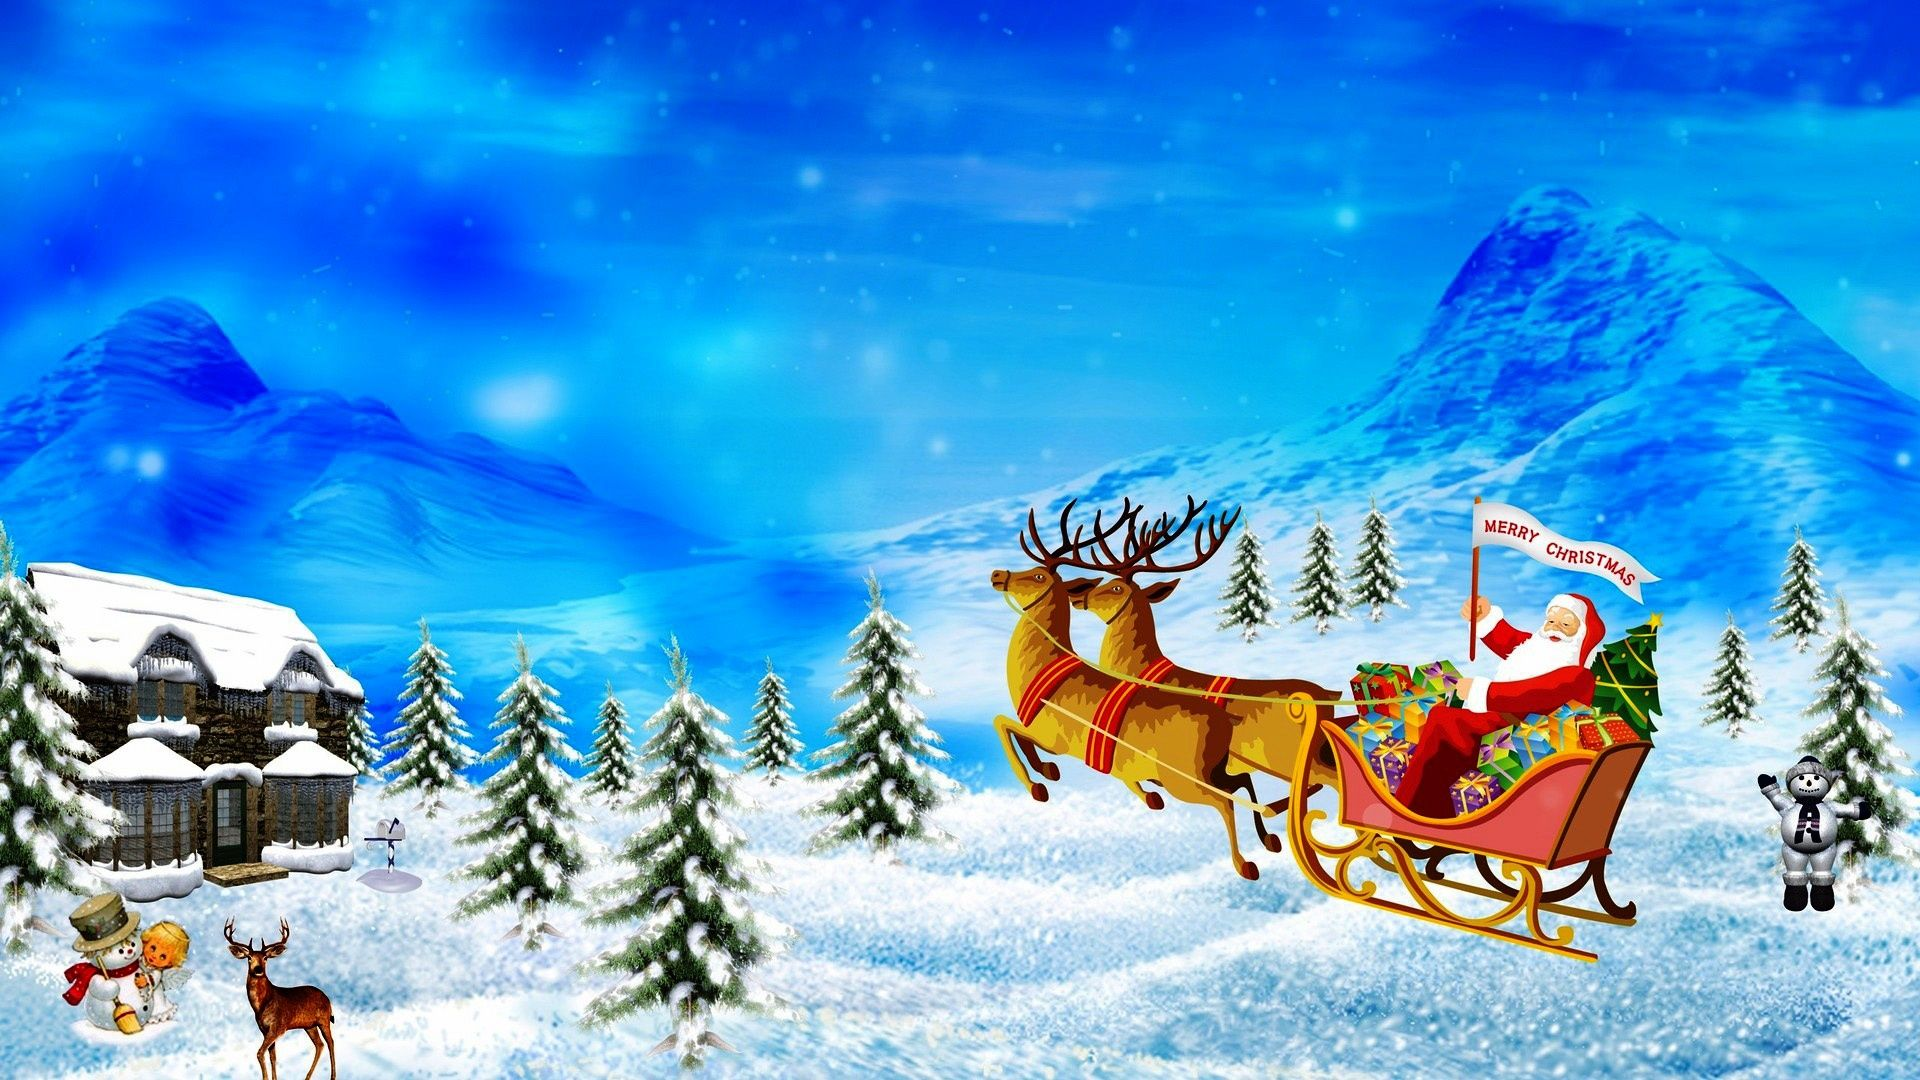 merry christmas wallpaper 03 merry christmas wallpaper 04 merry 1920x1080